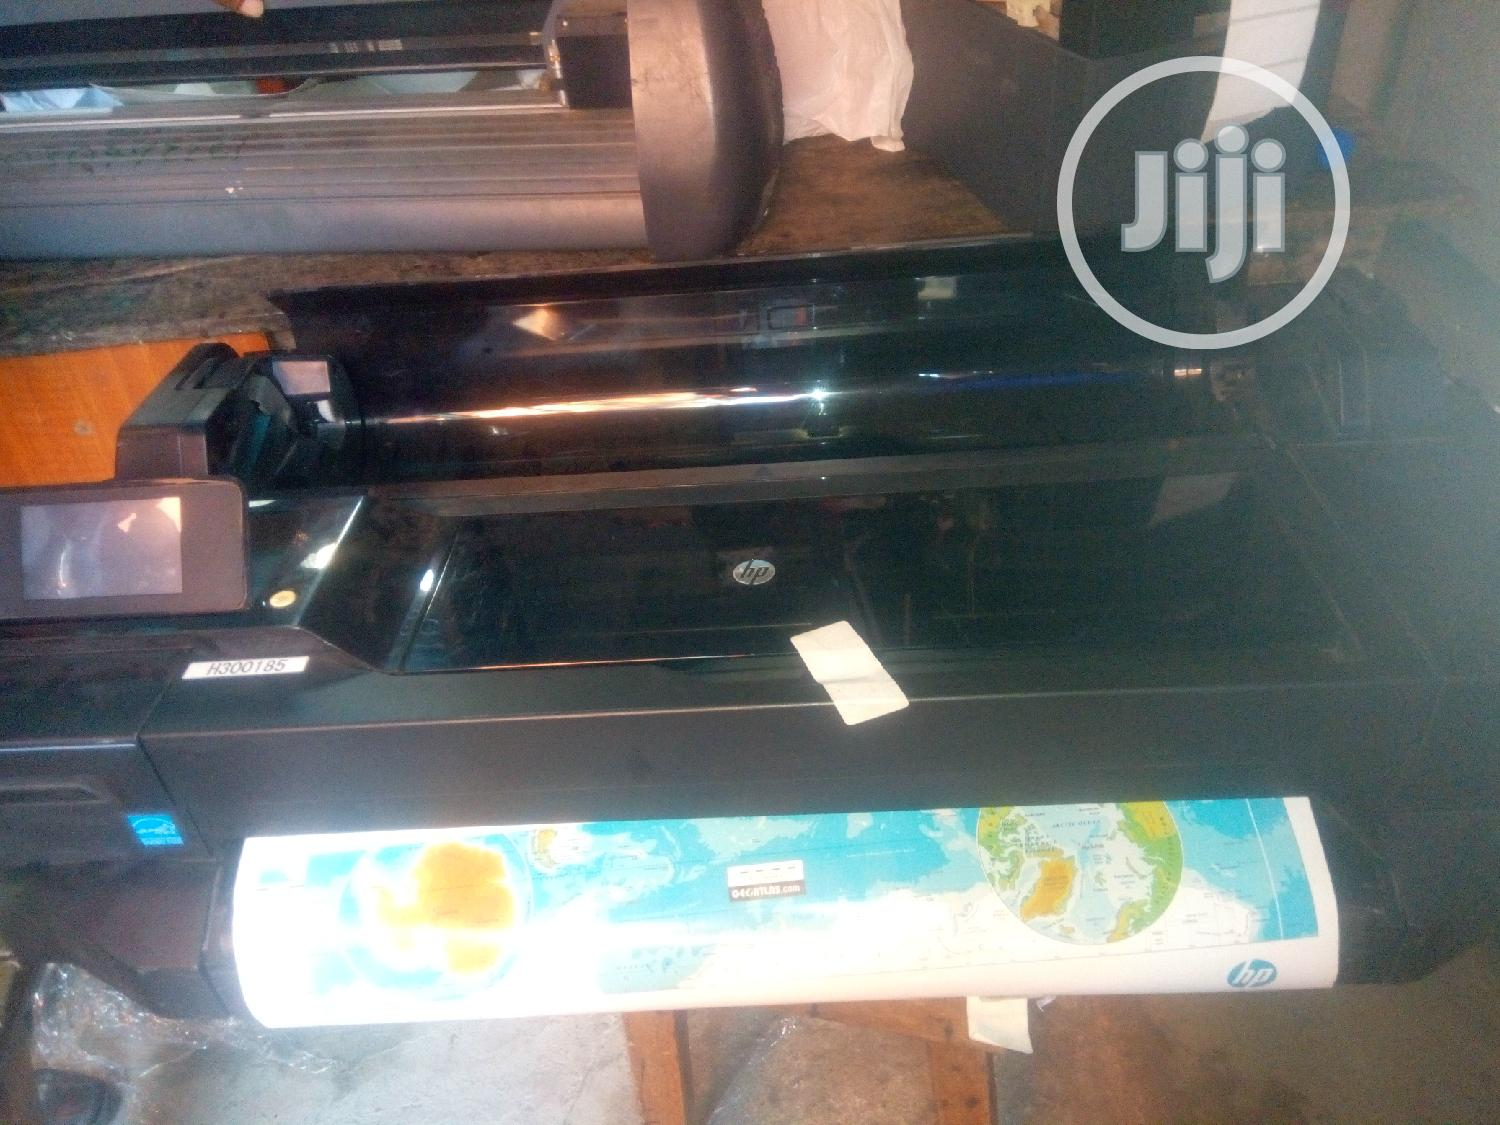 Archive: A2 A3 A4 Designjet T520 Wireless Printer Print From Phone